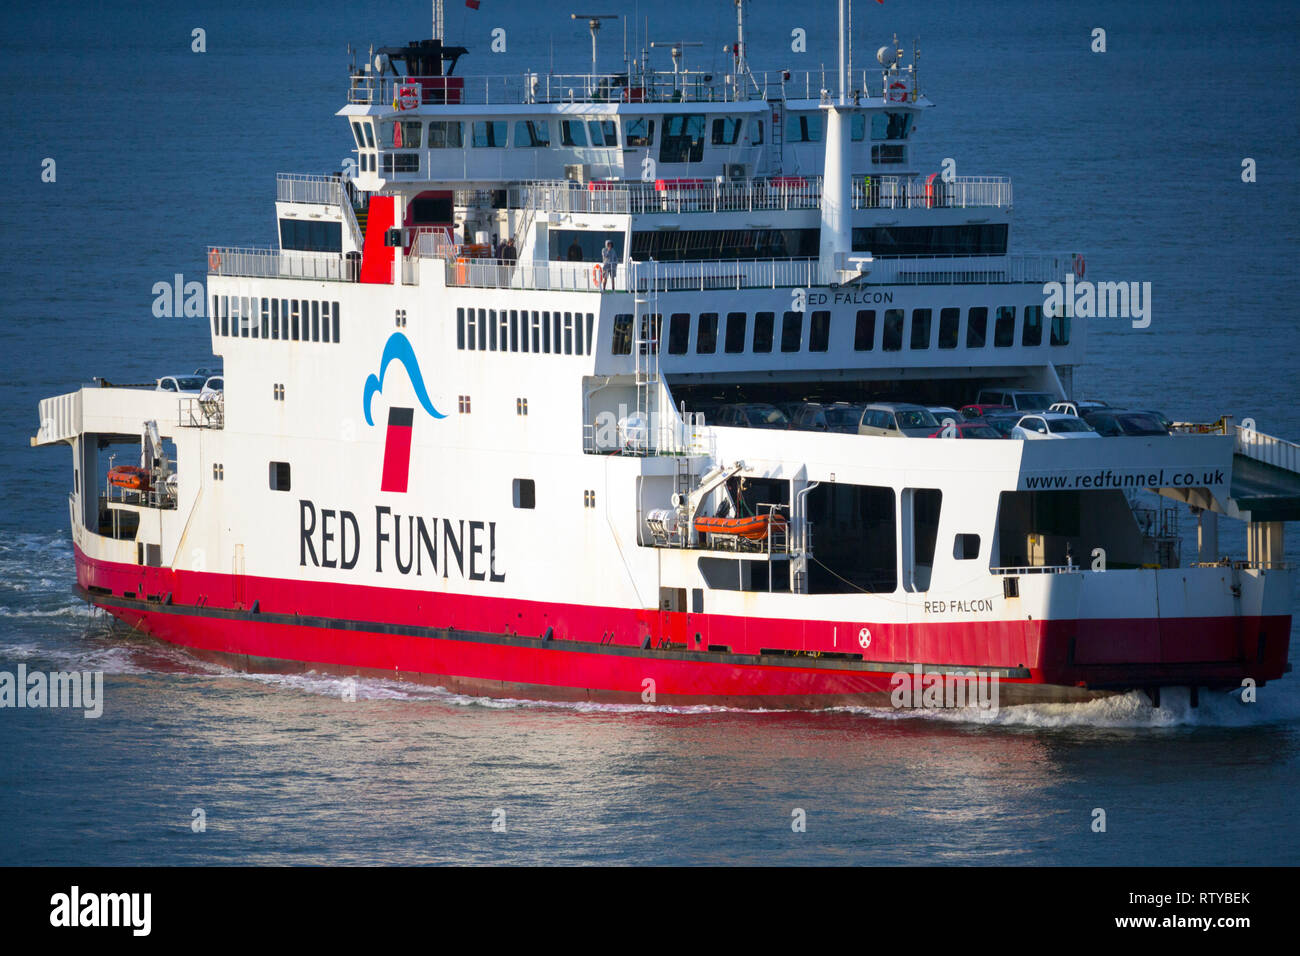 Red,Funnel,Falcon,Southampton,Cowes,car,ferry, passenger, coach, lorry,truck,transport,sea,ocean,supermarket, food,supplies, - Stock Image